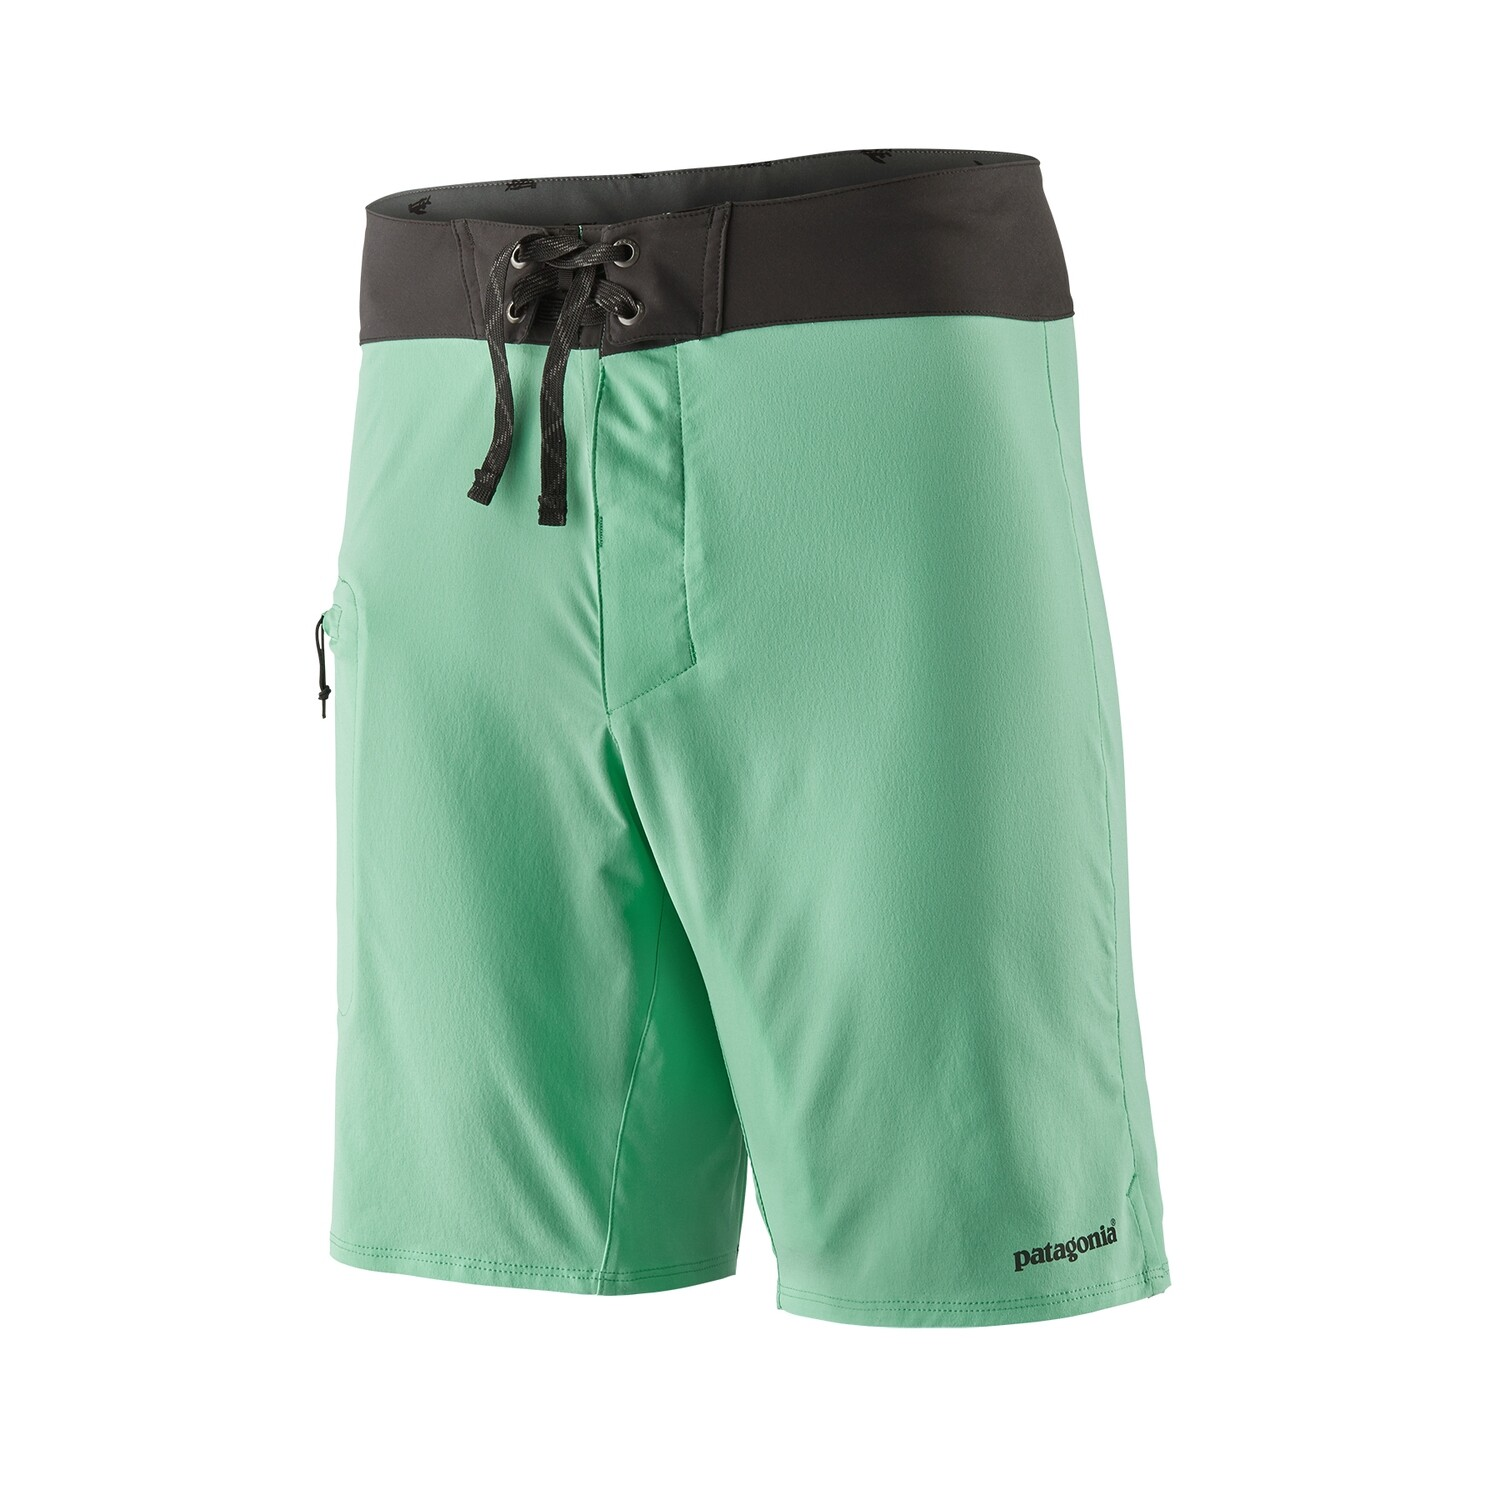 PAT Stretch Planing Boardshort 19""